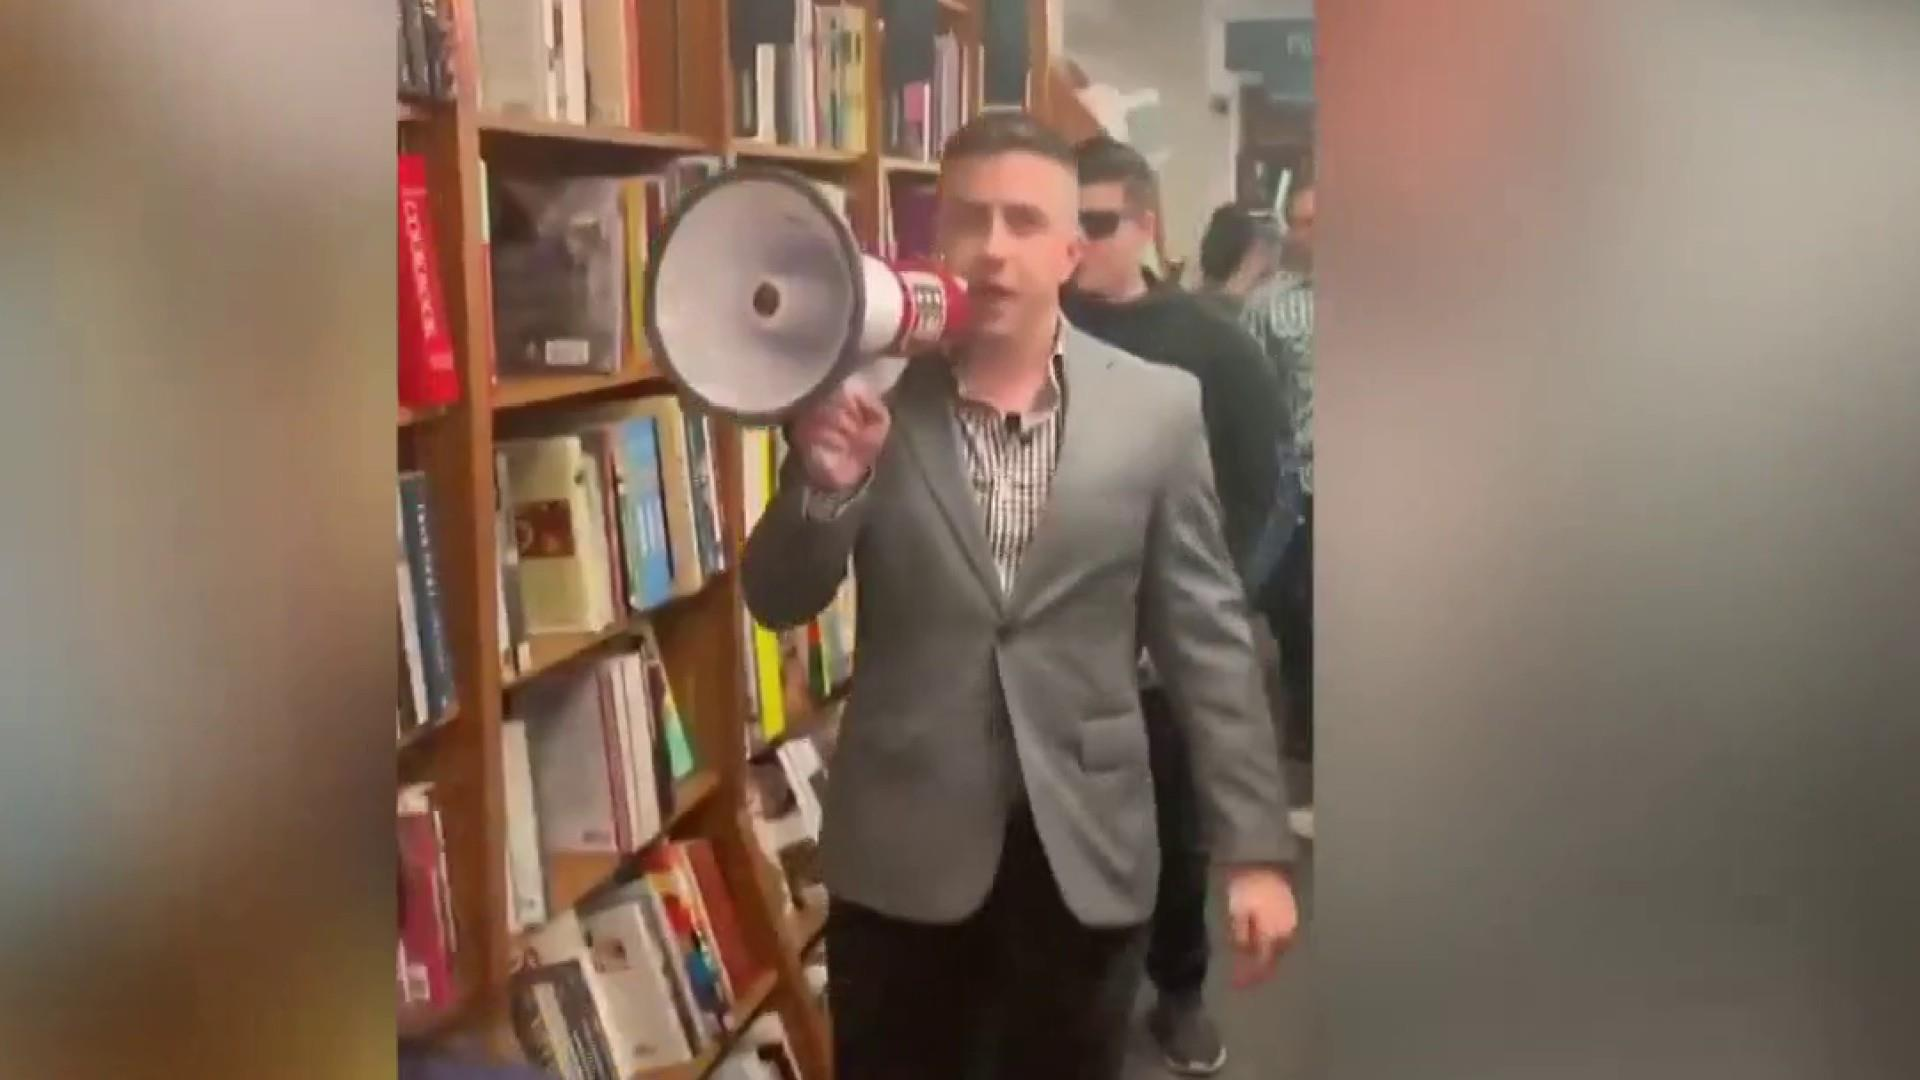 Self-proclaimed white nationalists disrupt event on 'whiteness'